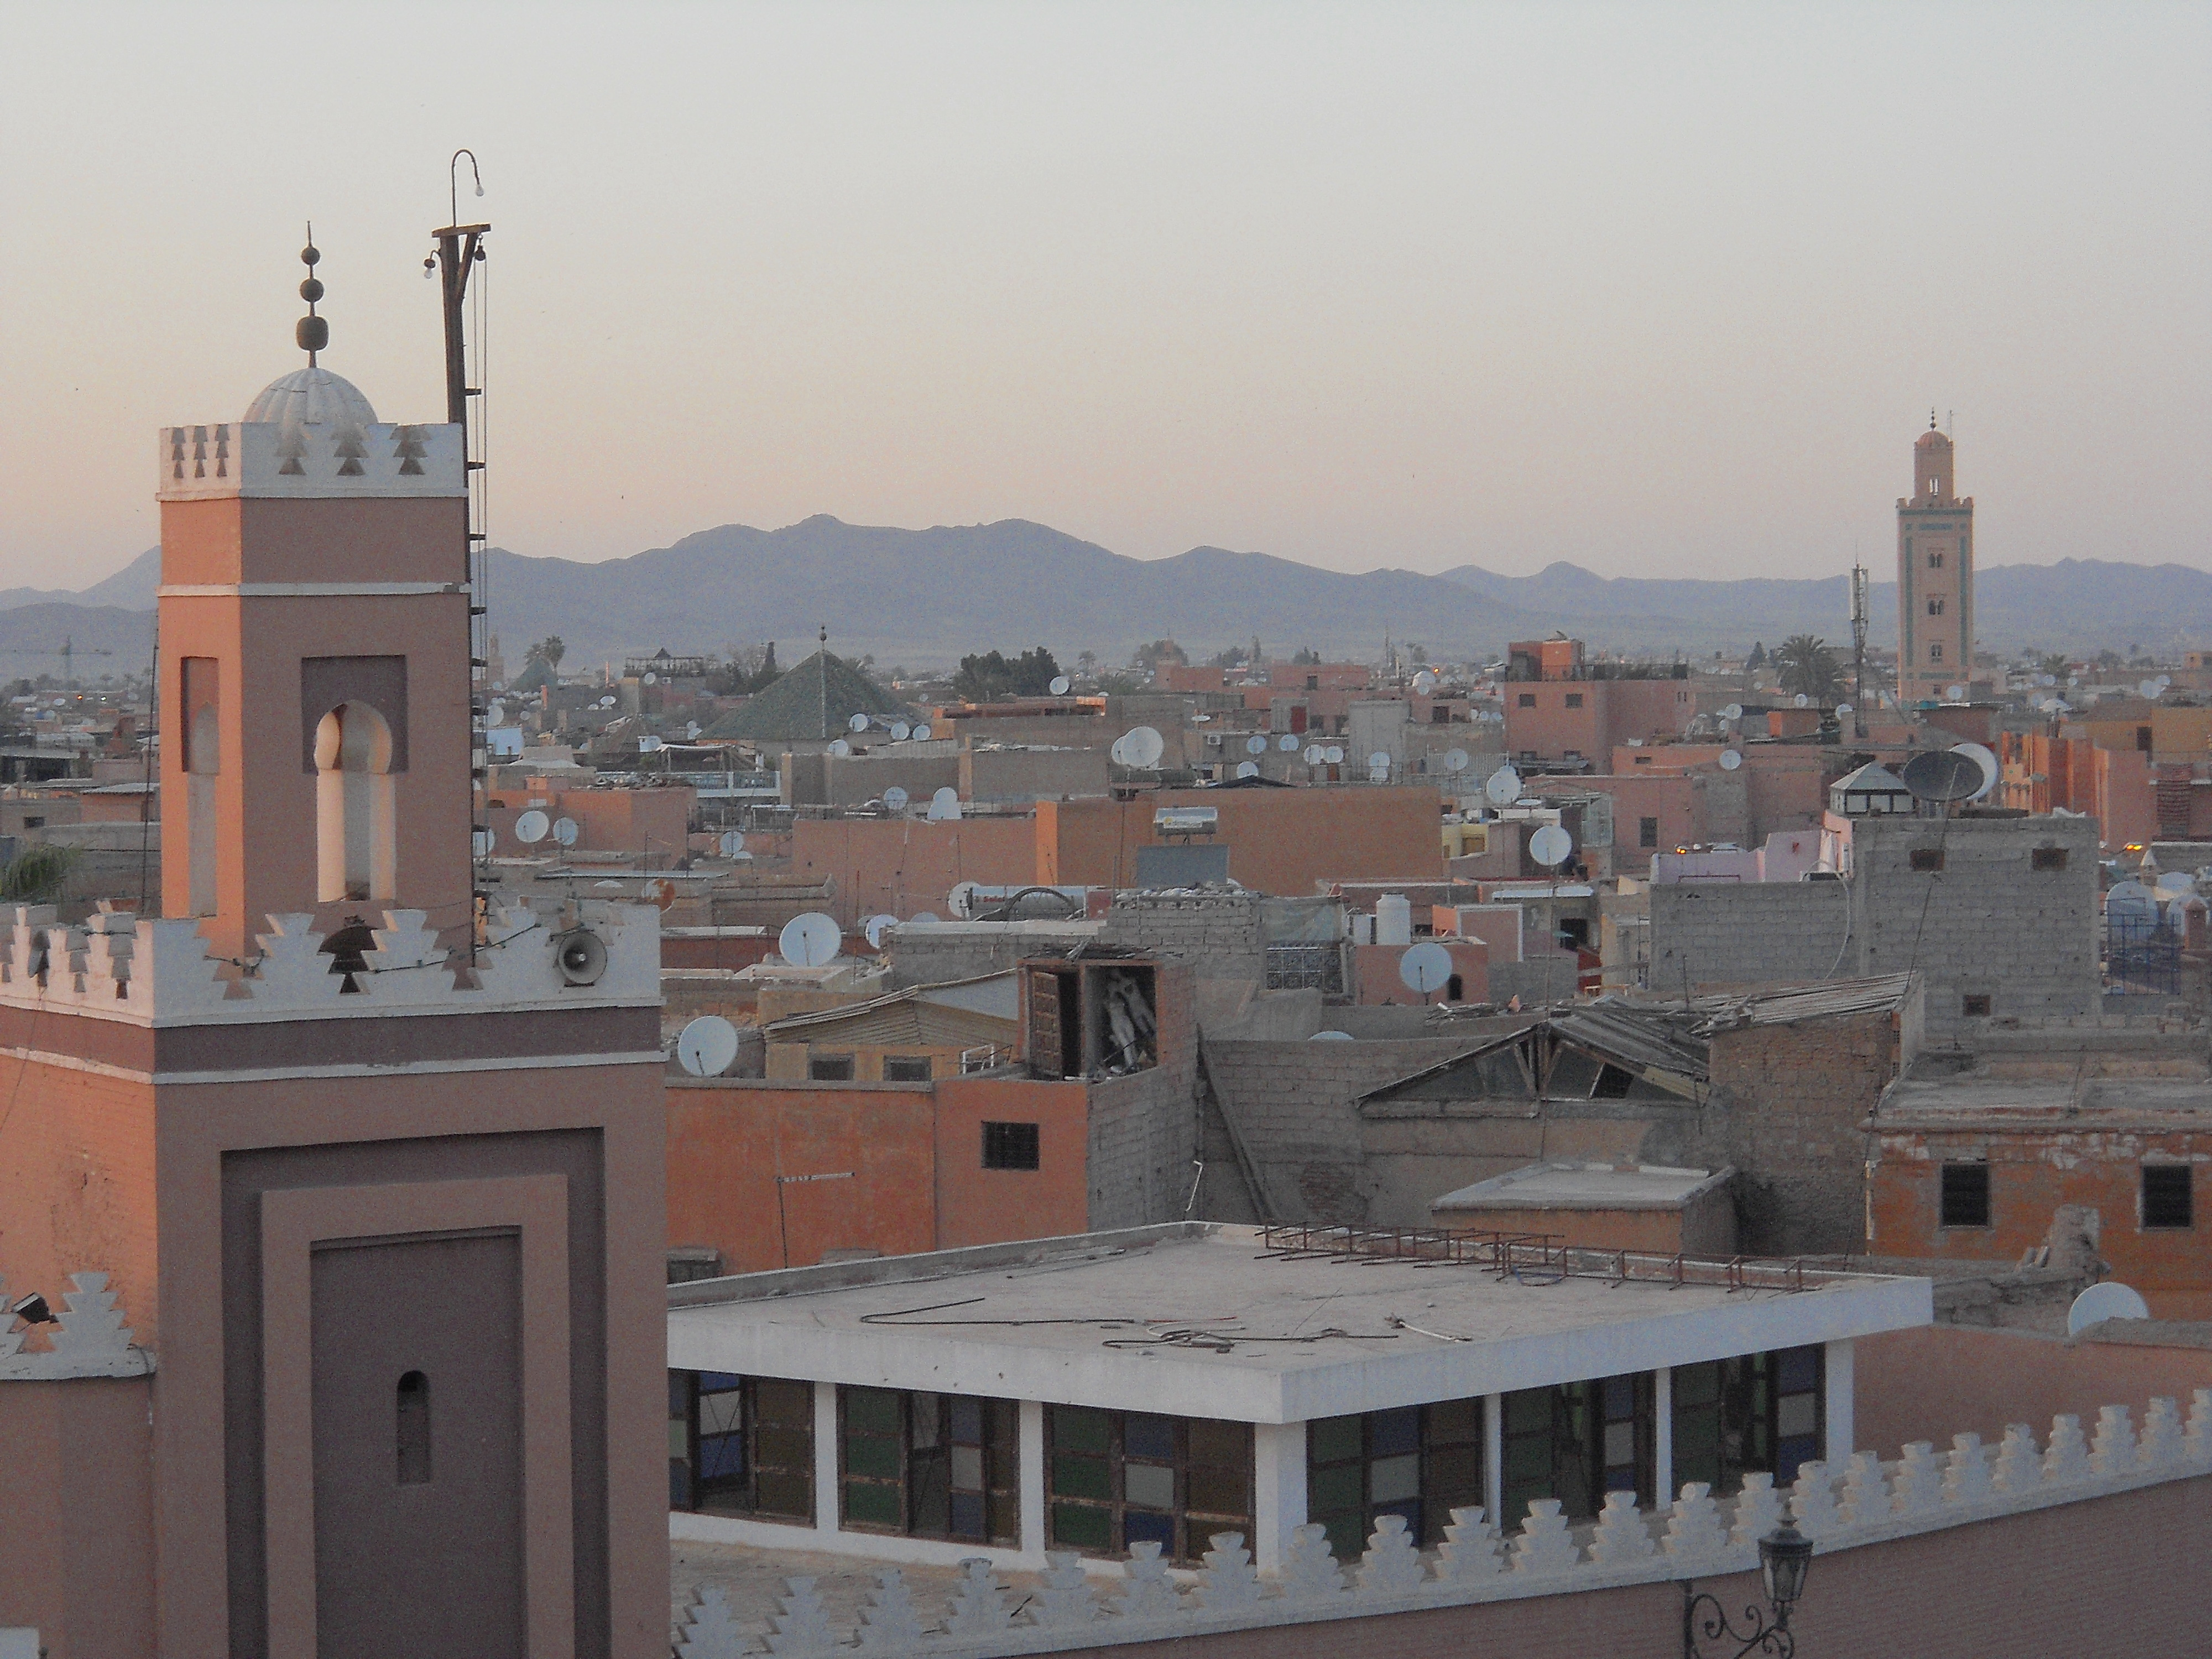 Morocco - Day Ten - Final Day and revisiting Marrakech